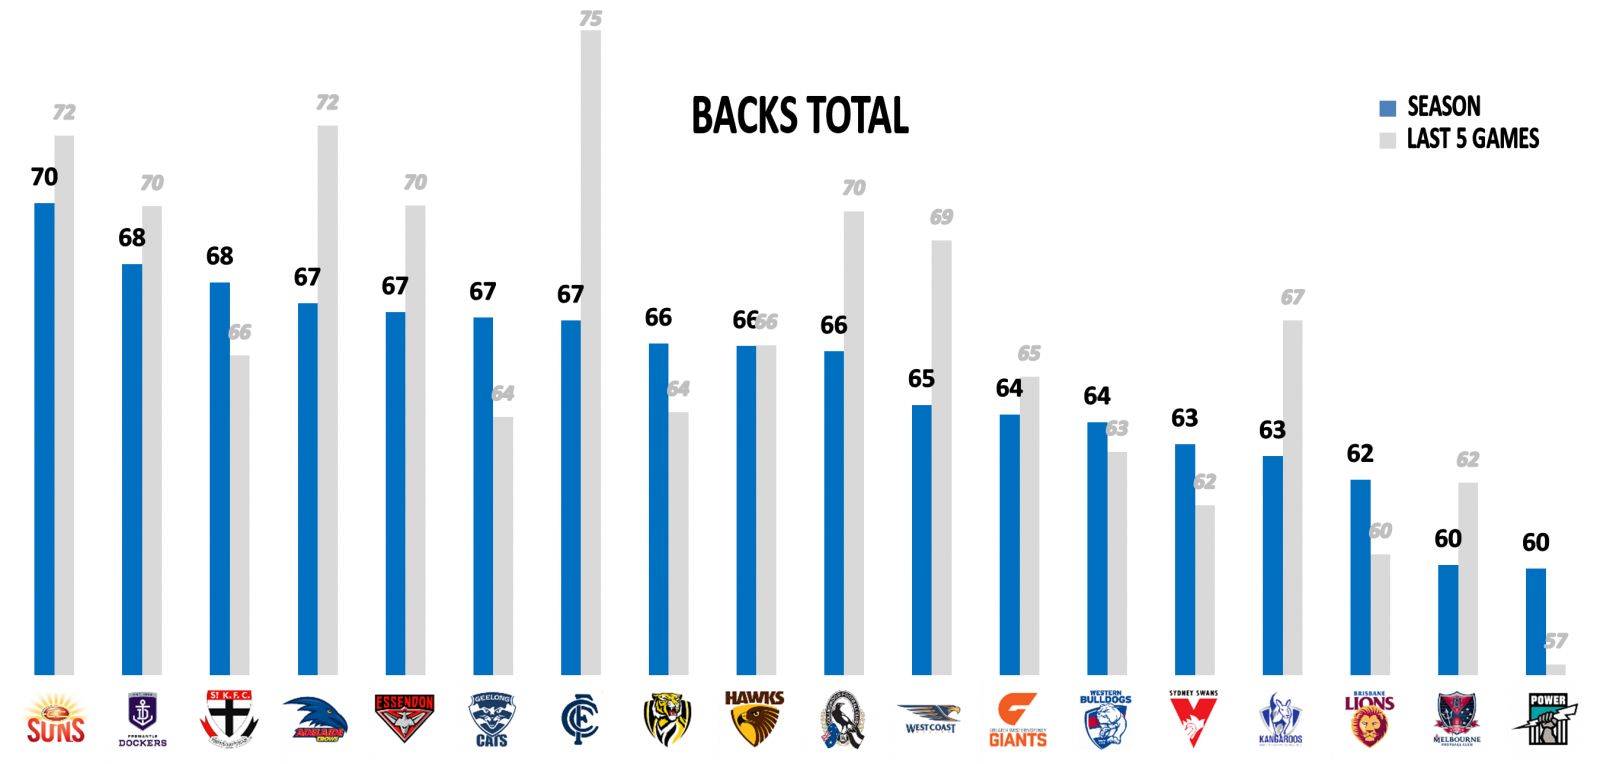 AFL Stats Points Against Backs